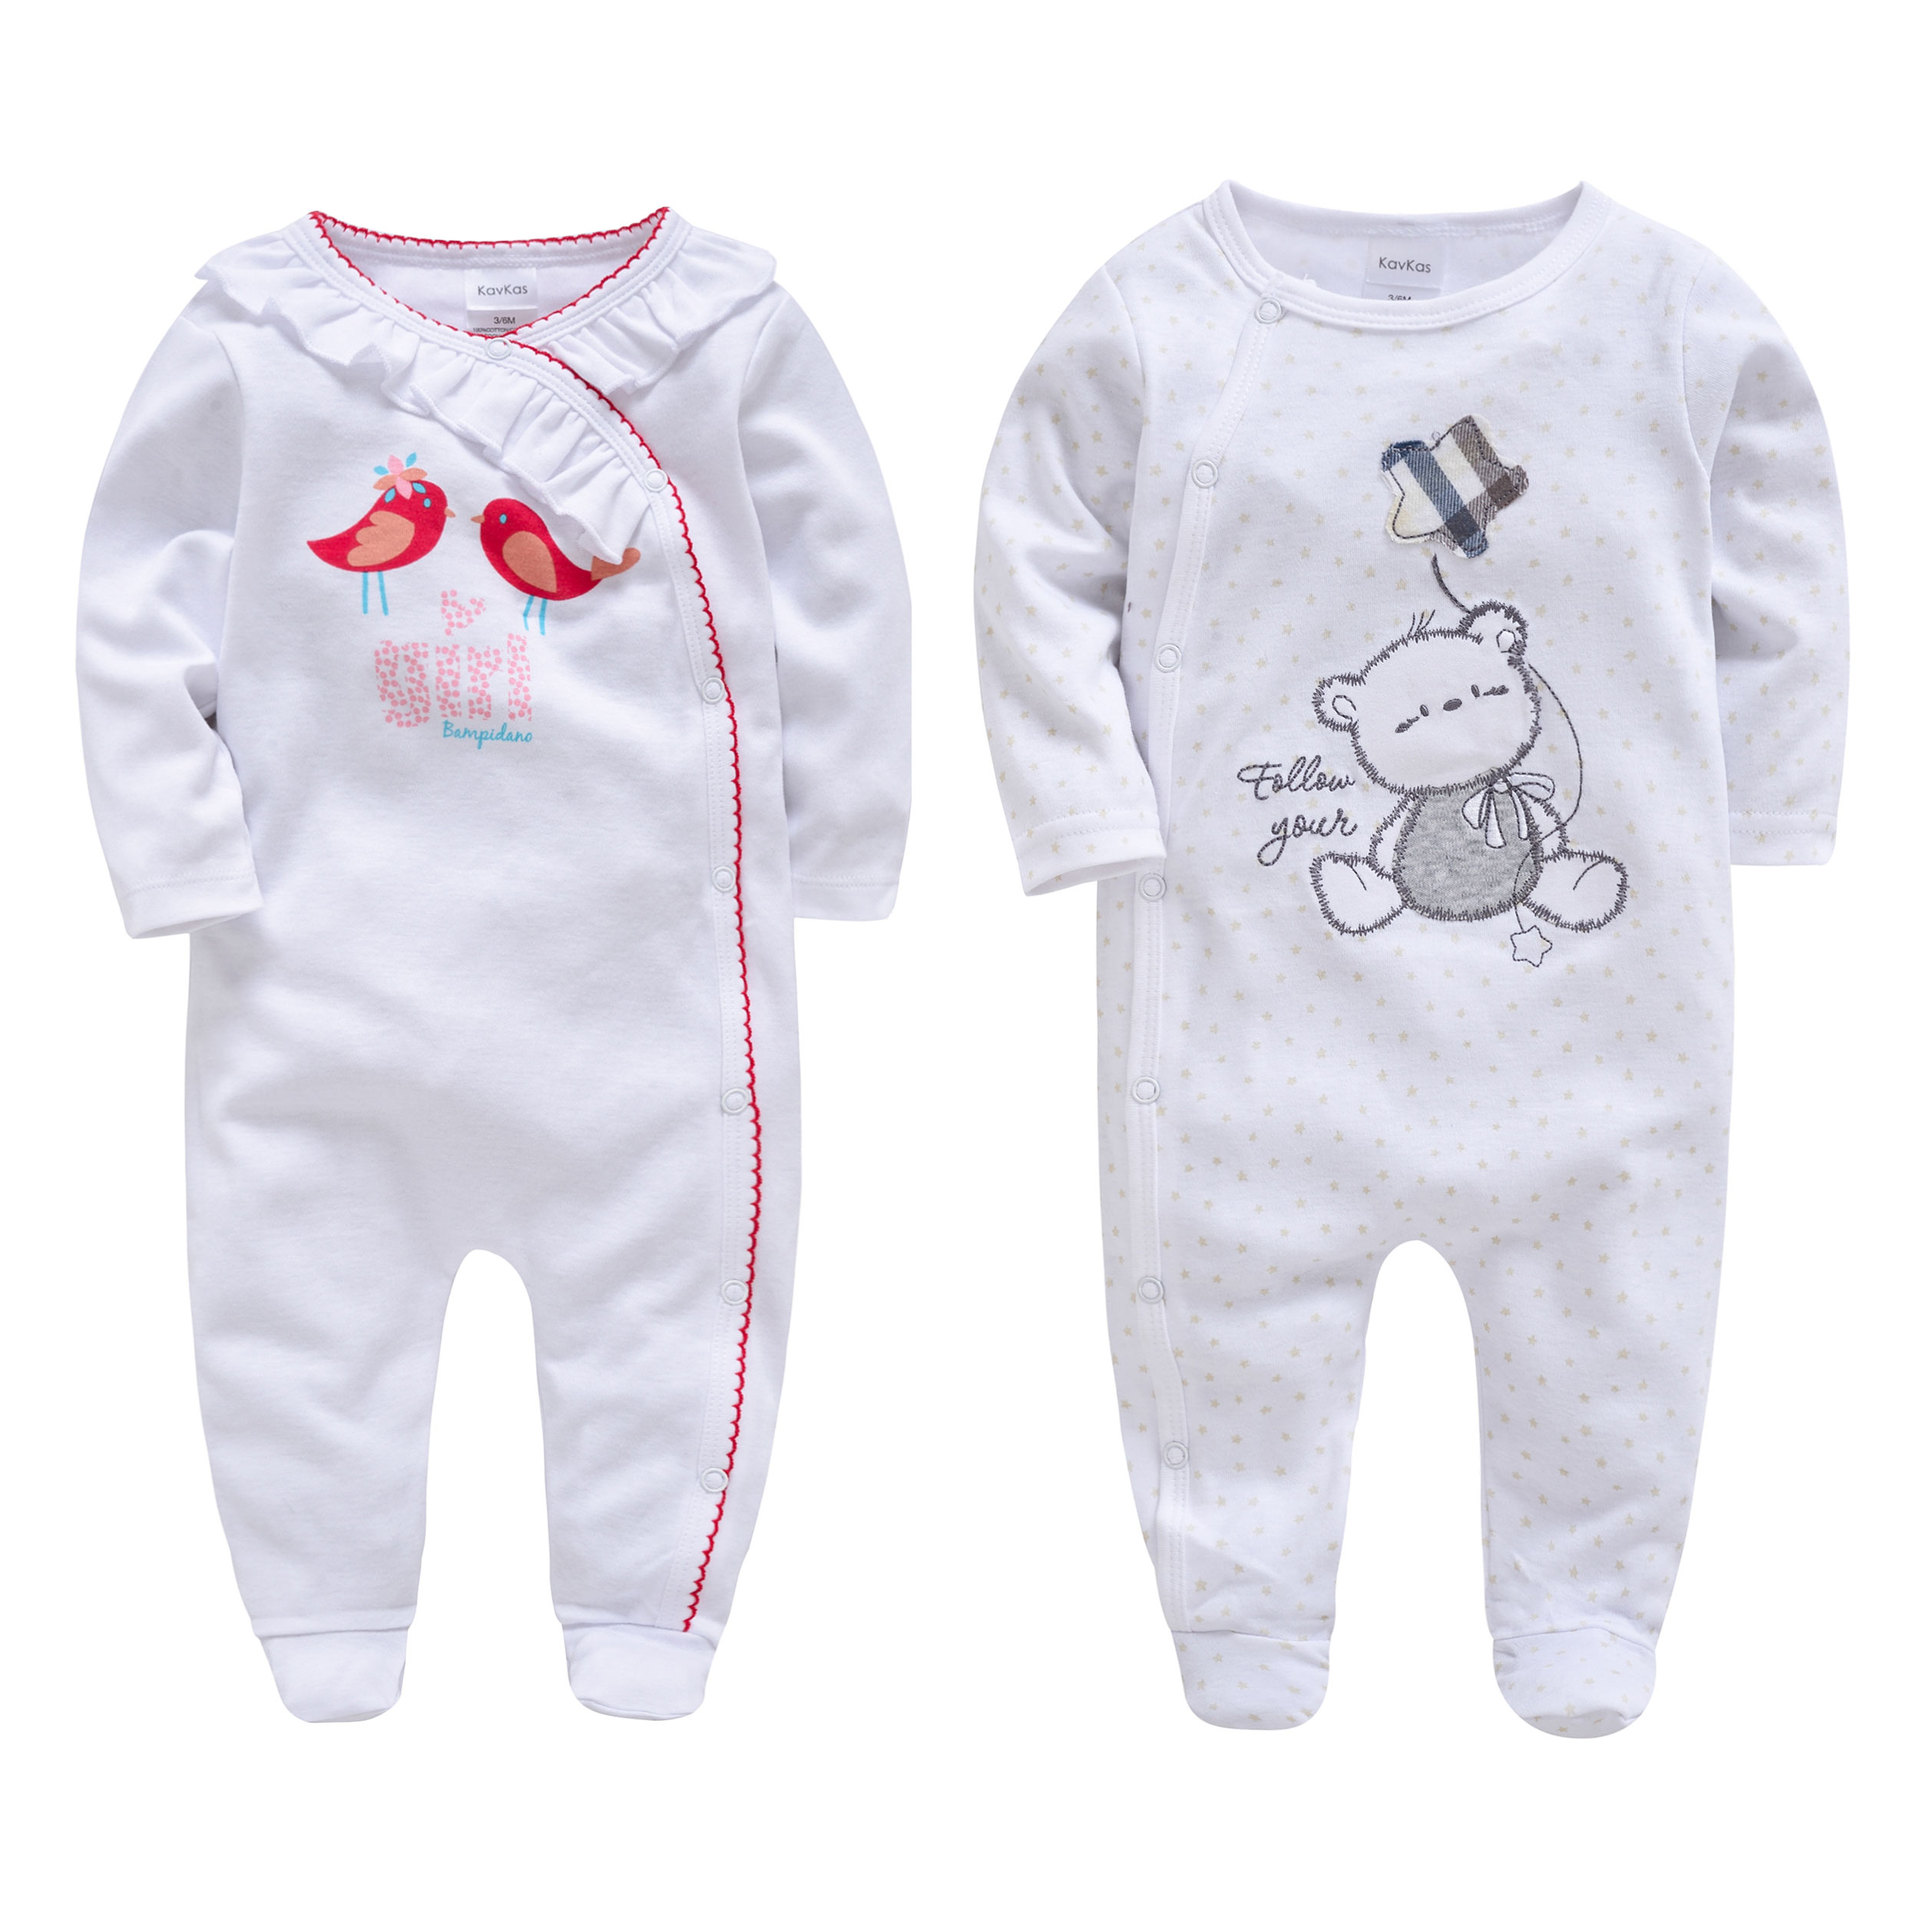 Morningtwo Newborn Baby Boys and Girls Romper Clothes Long Sleeve